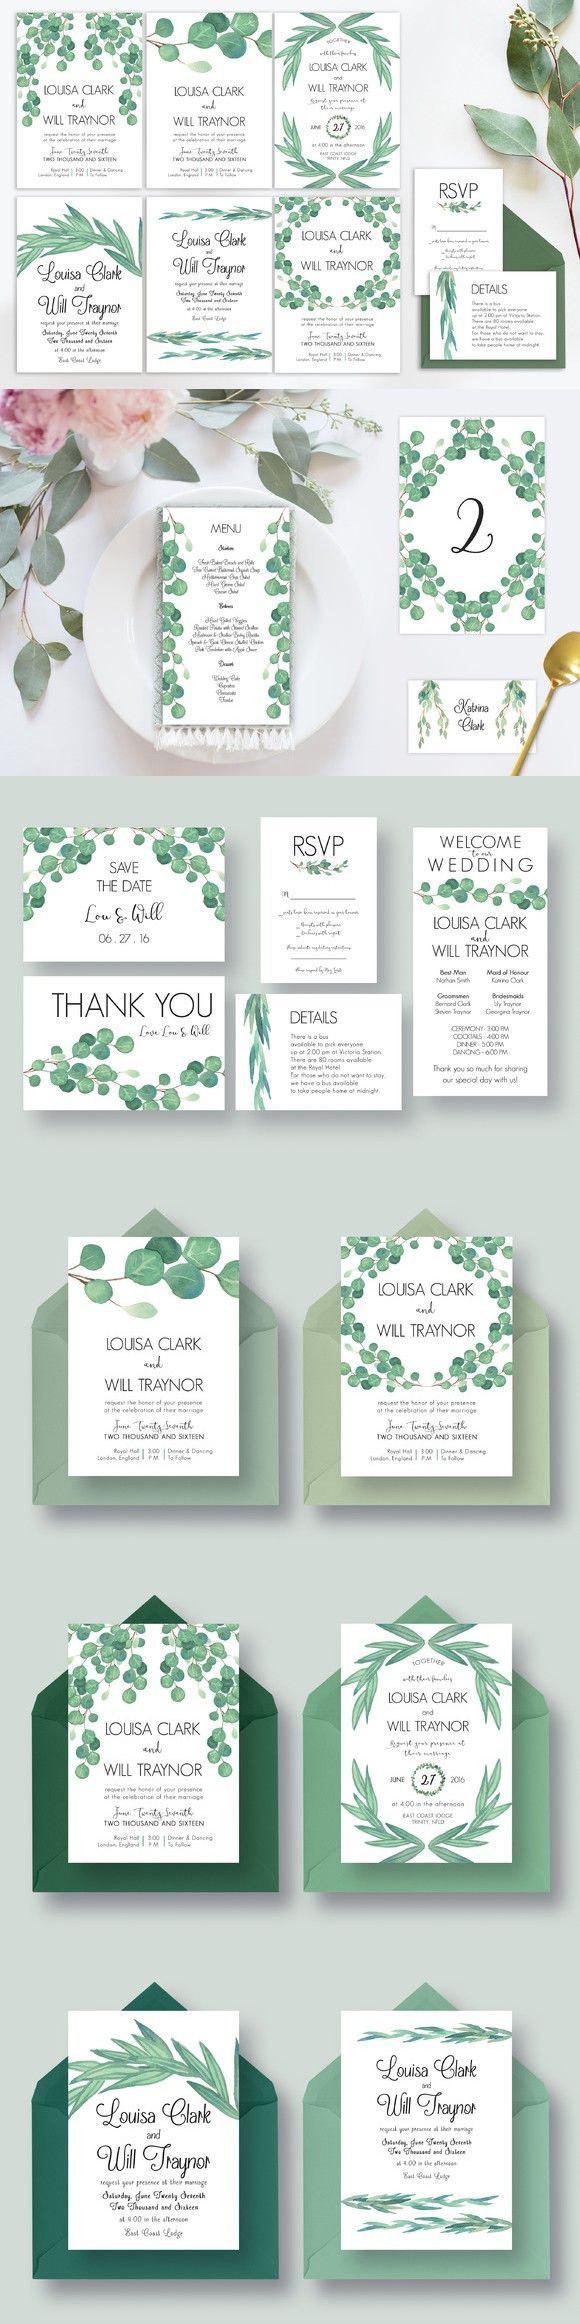 wedding invitation label templates%0A free resume objective samples